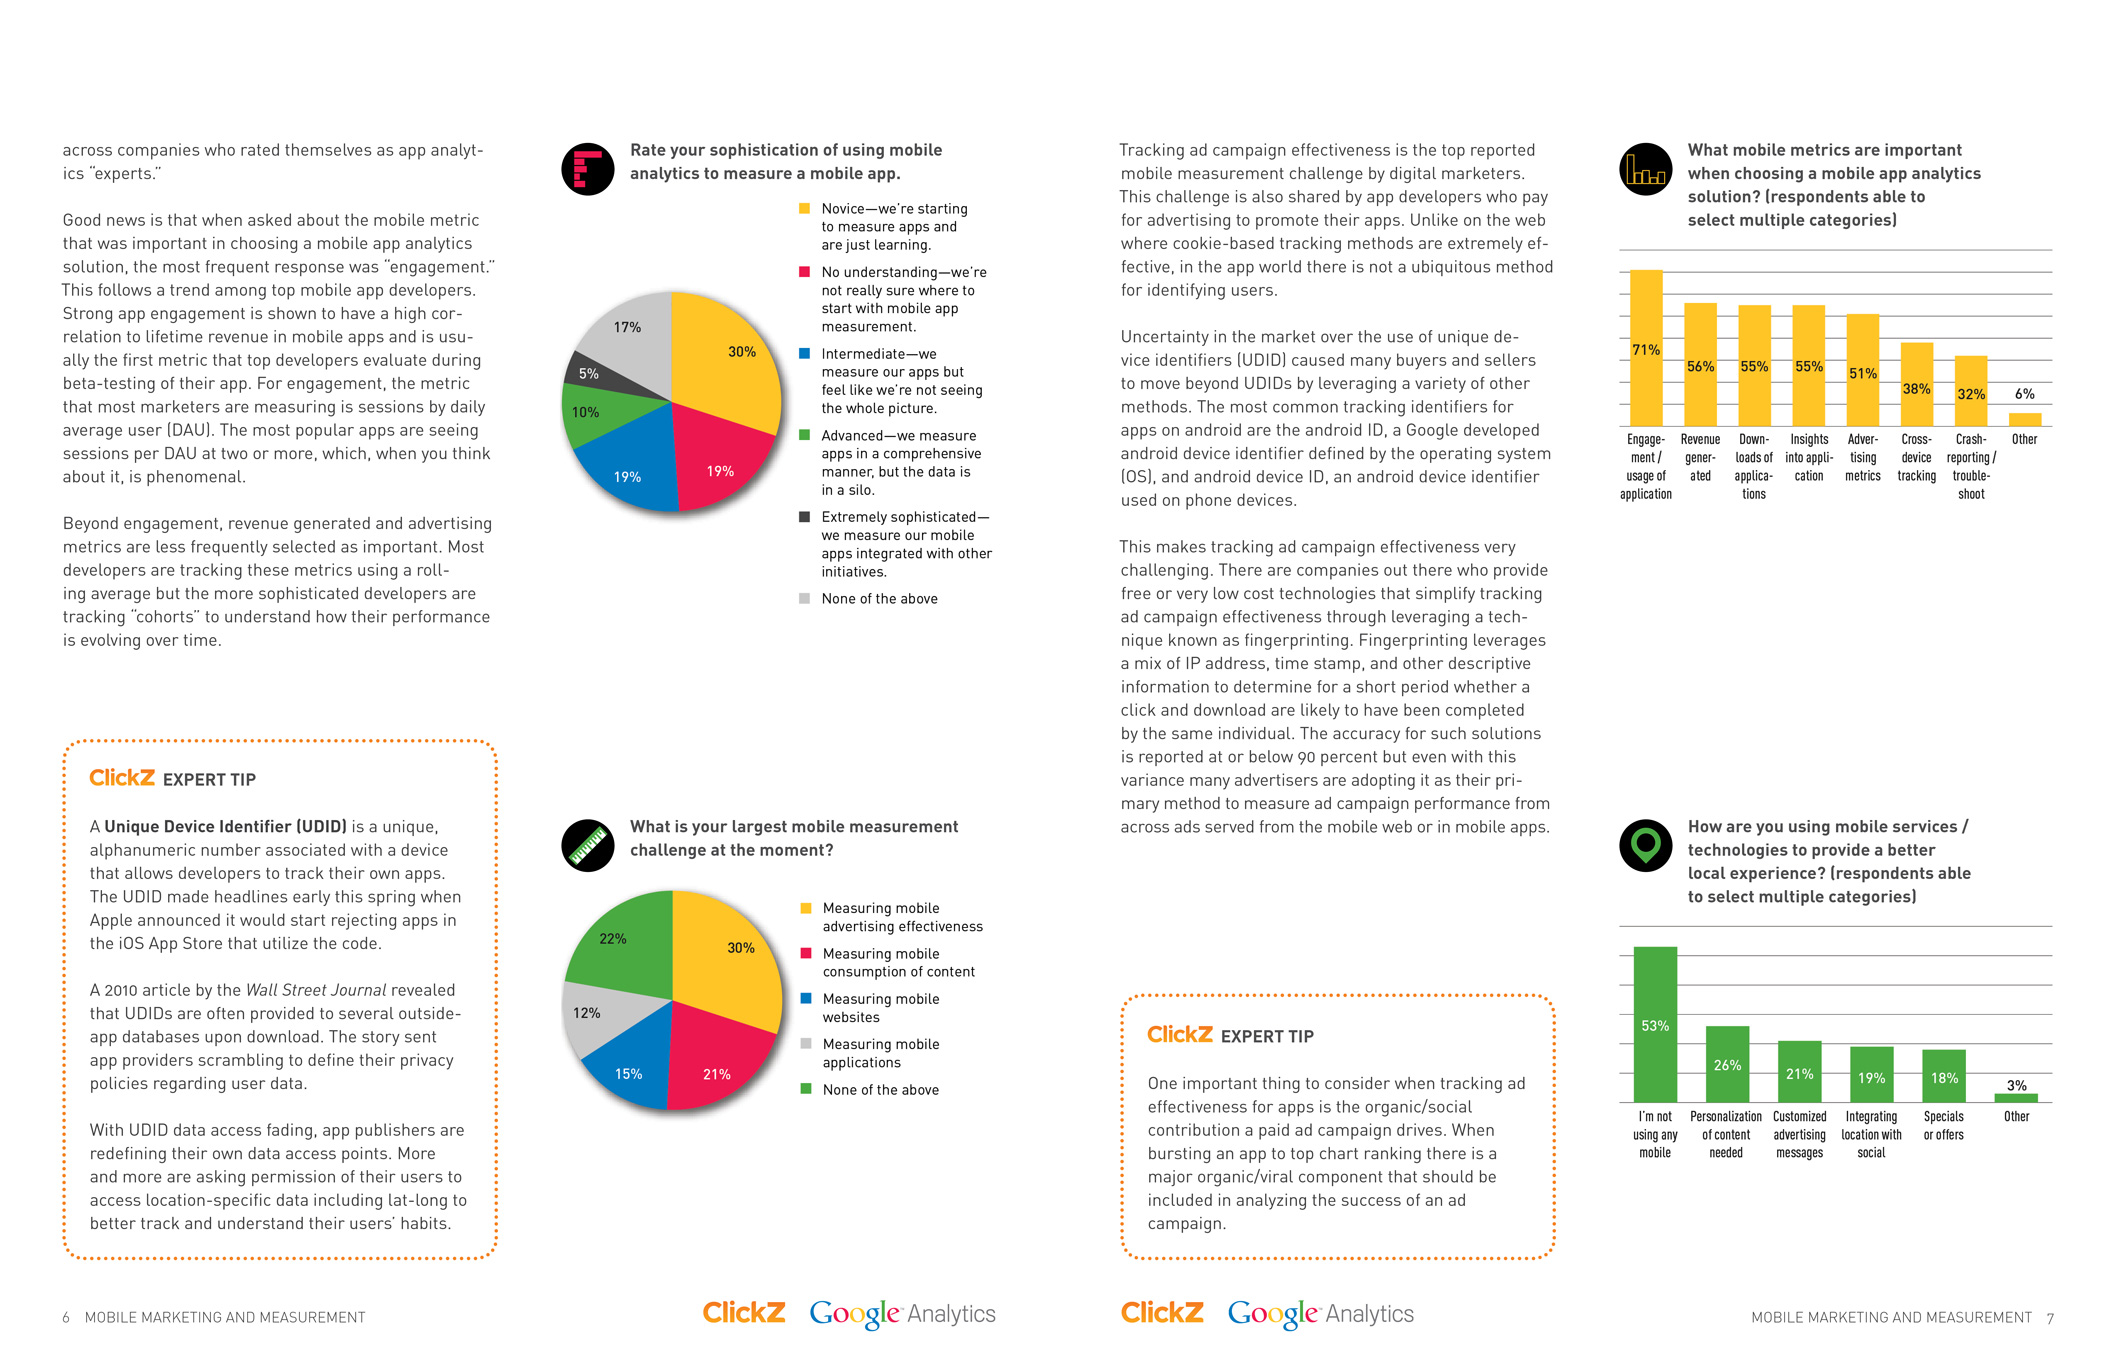 Report by ClickZ and Google Analytics on mobile marketing.